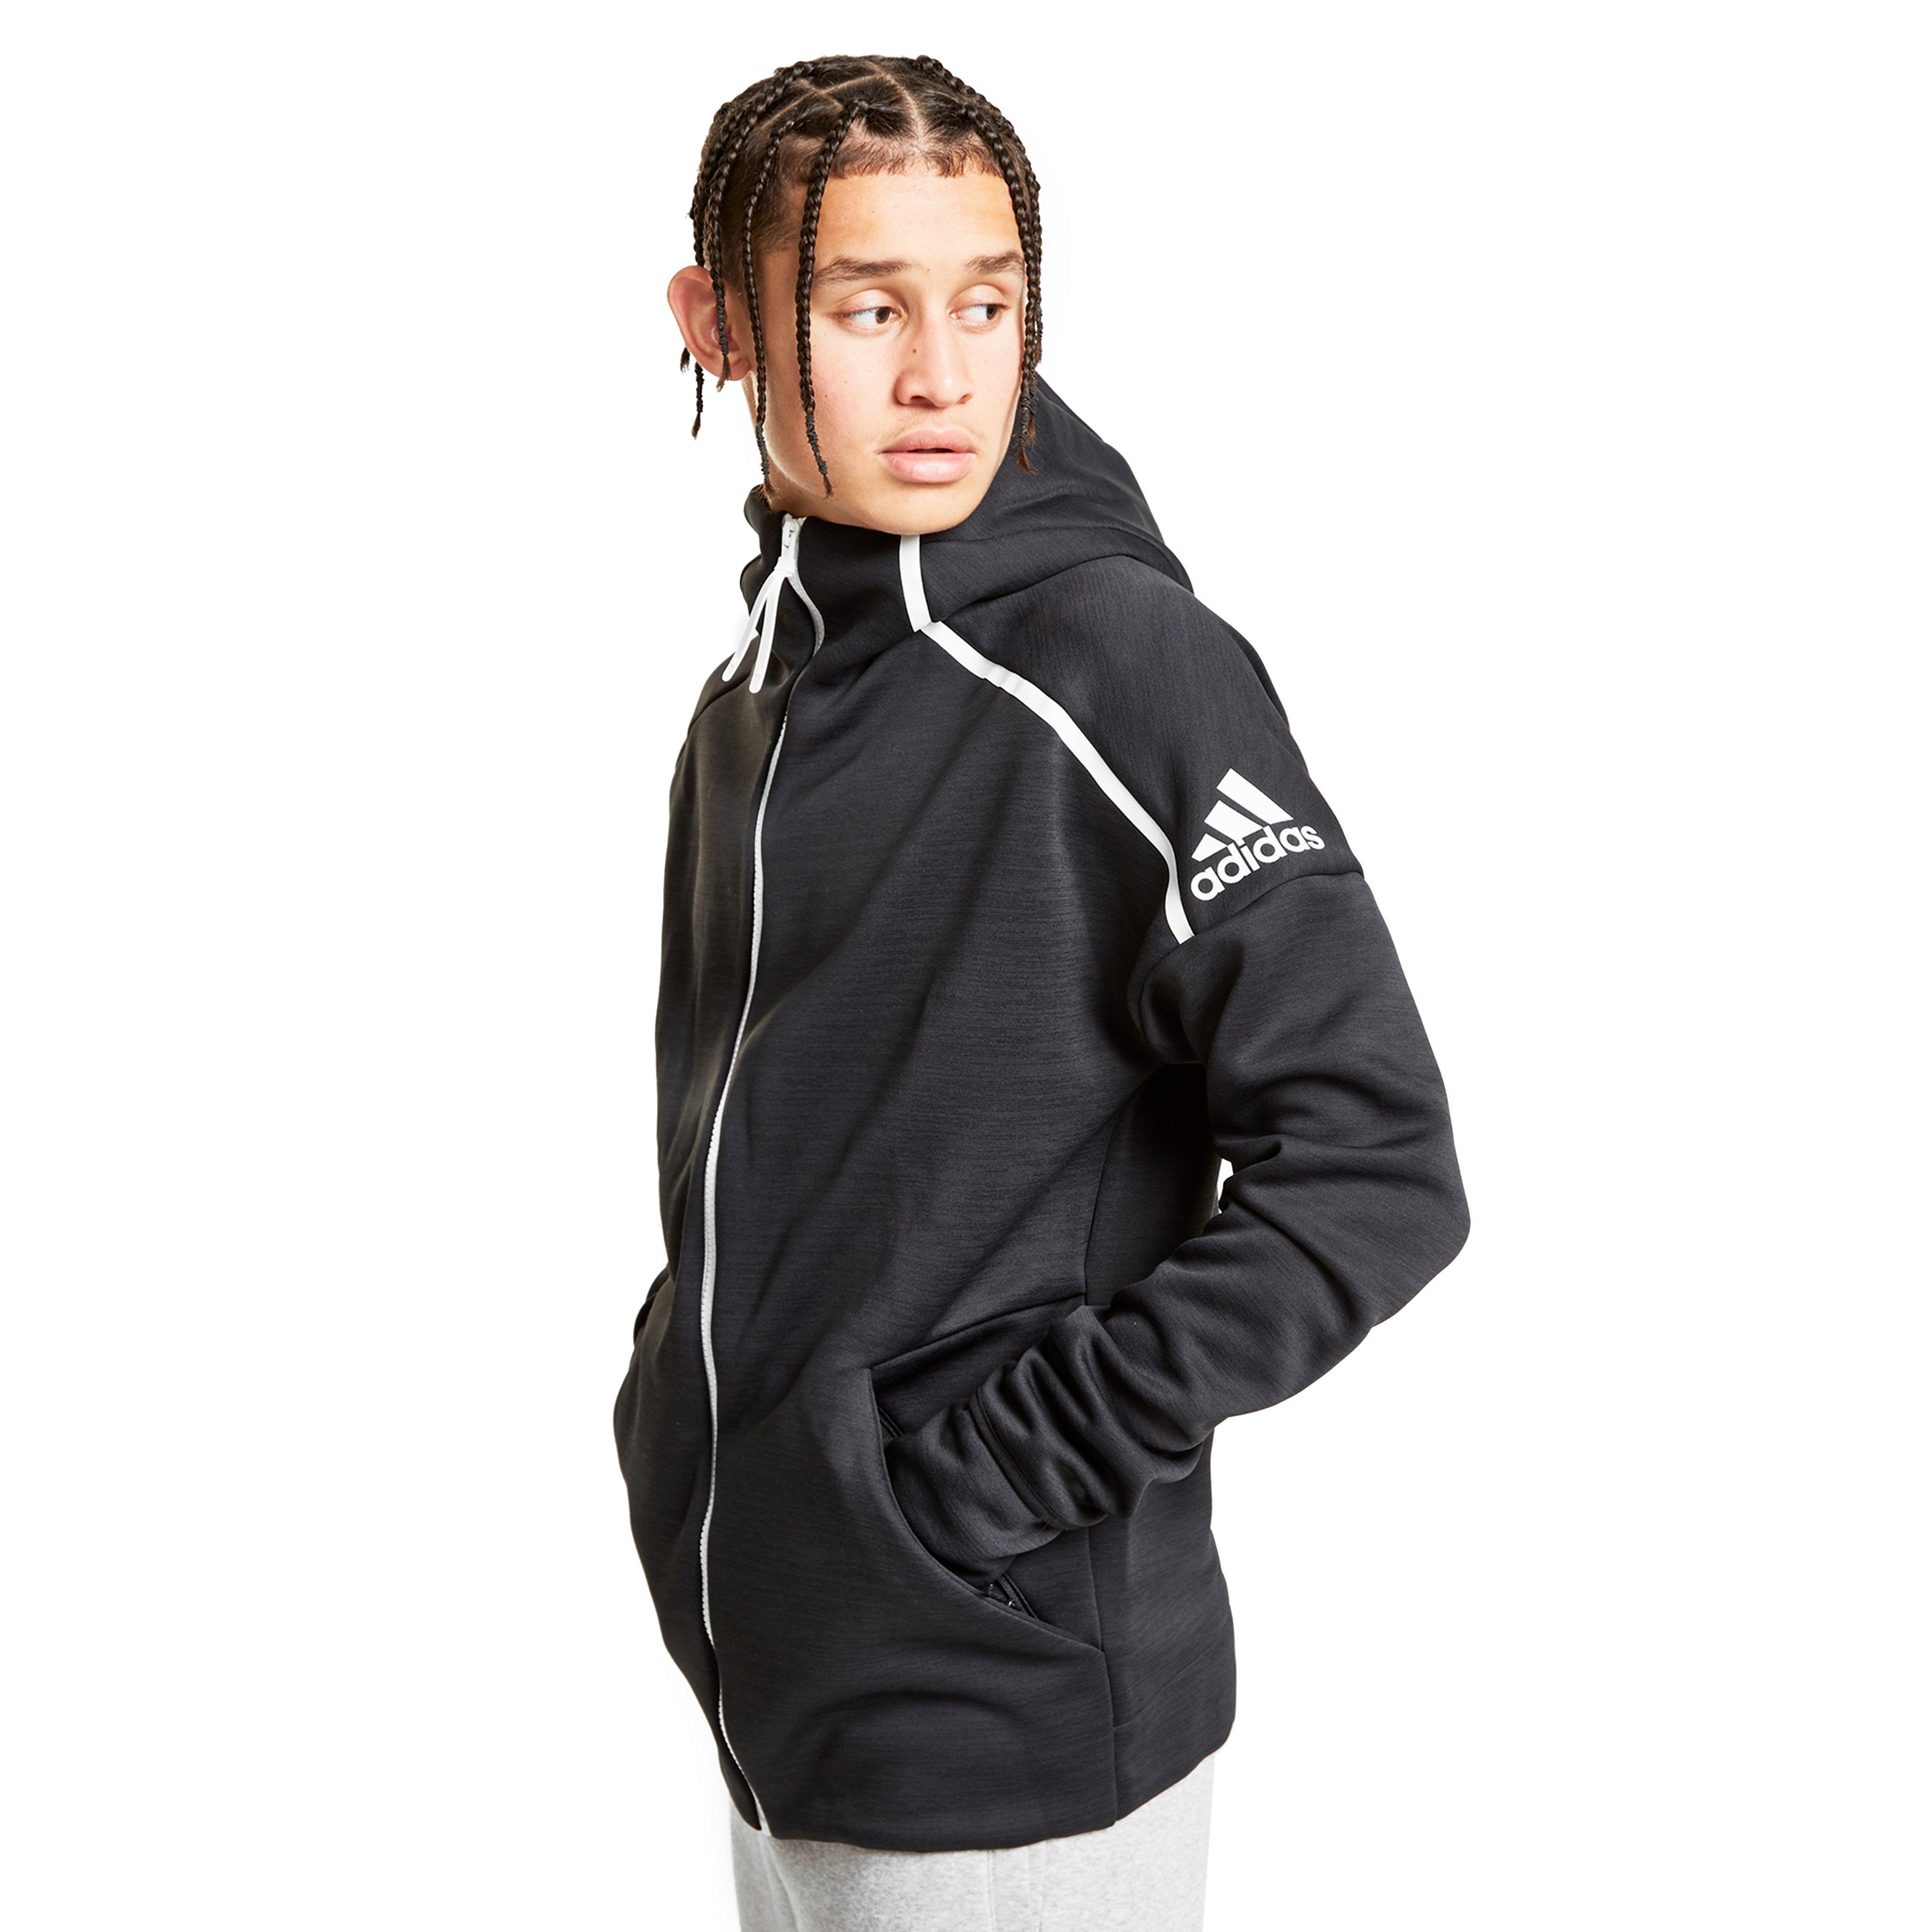 Details about adidas Z.N.E Men s Tennis Hooded Jacket 75a783ddce